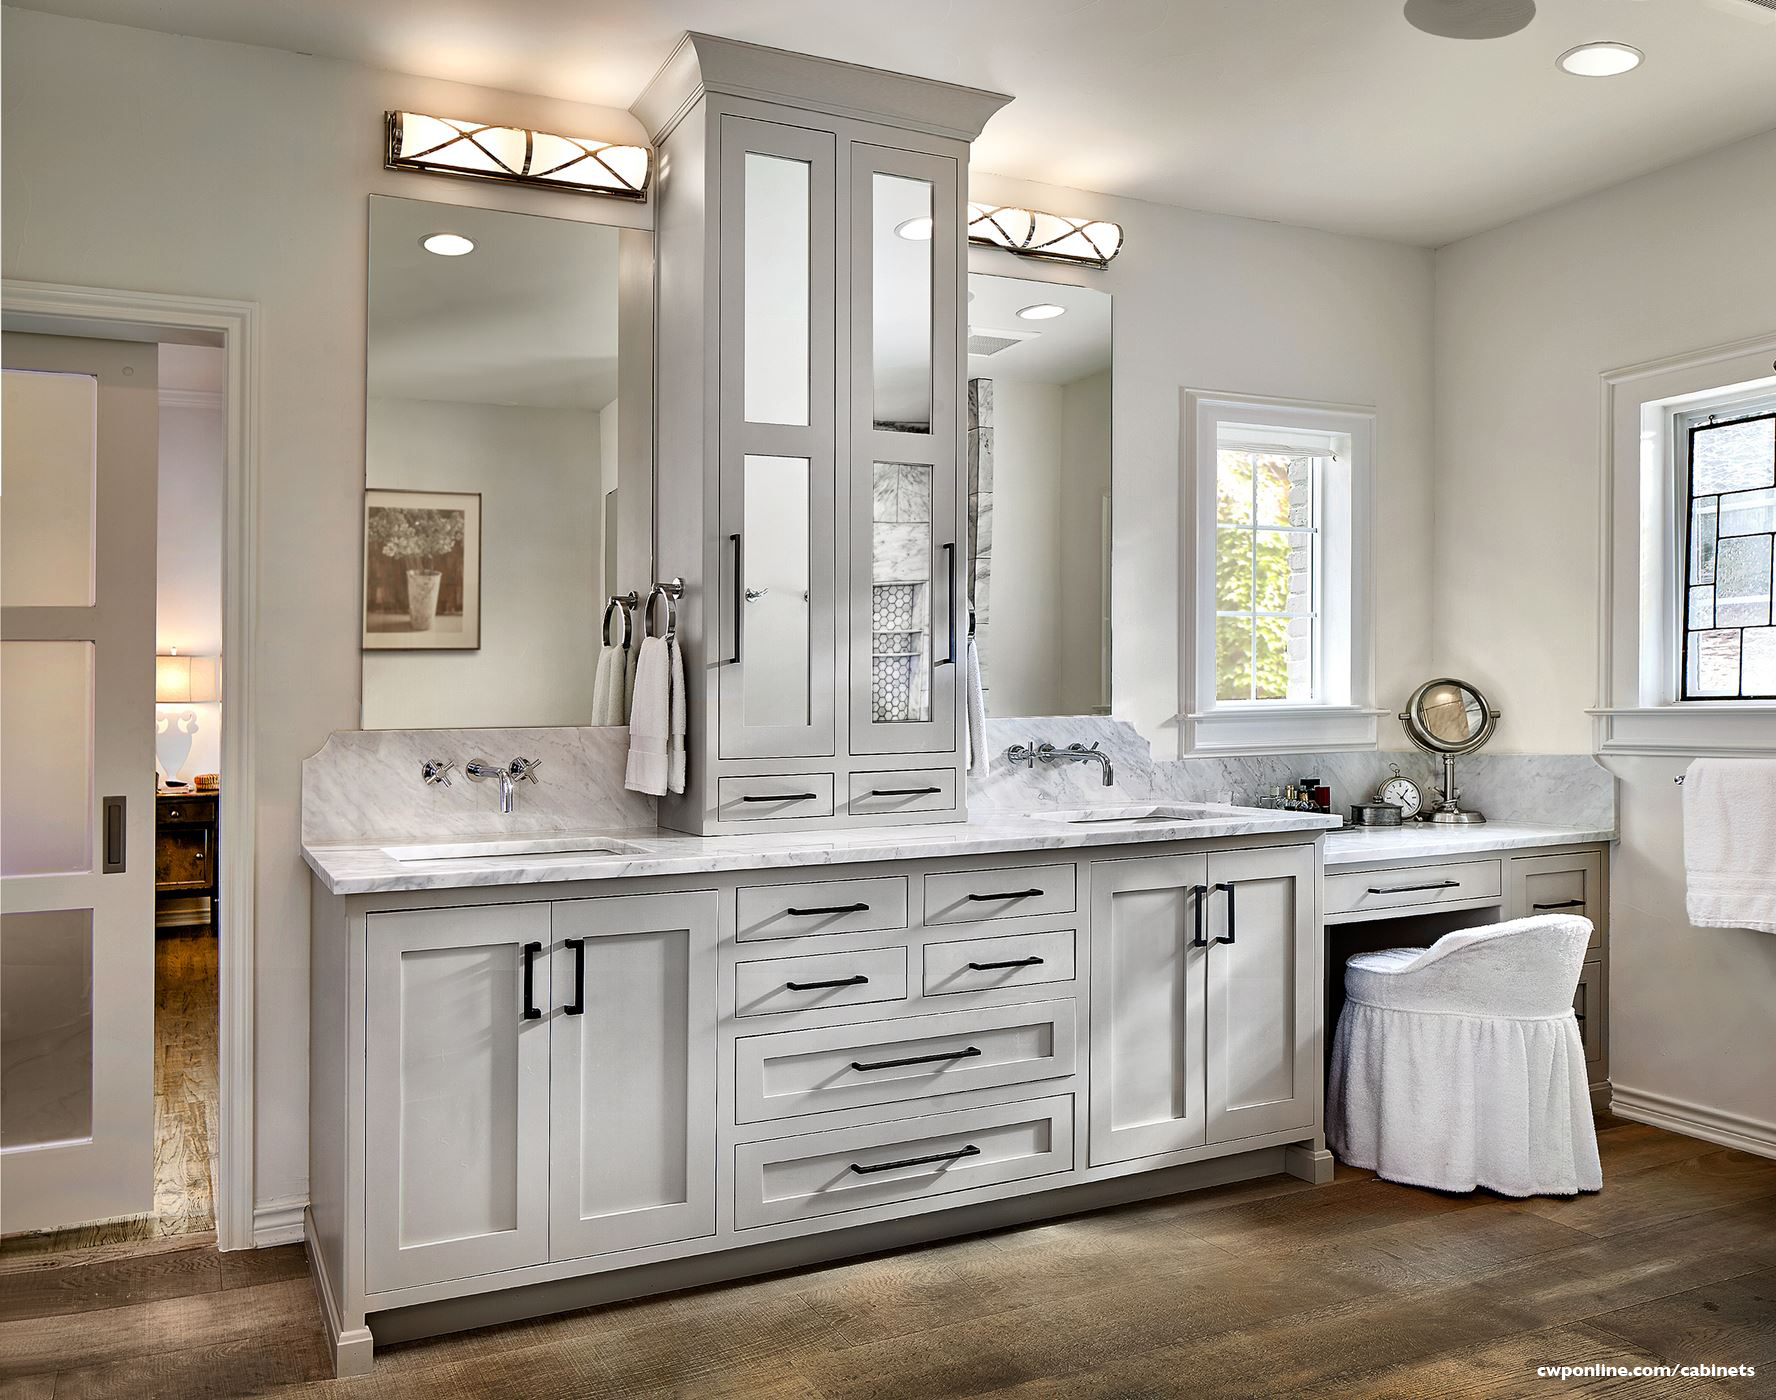 Projects: Vanities - COAST TO COAST CABINETS